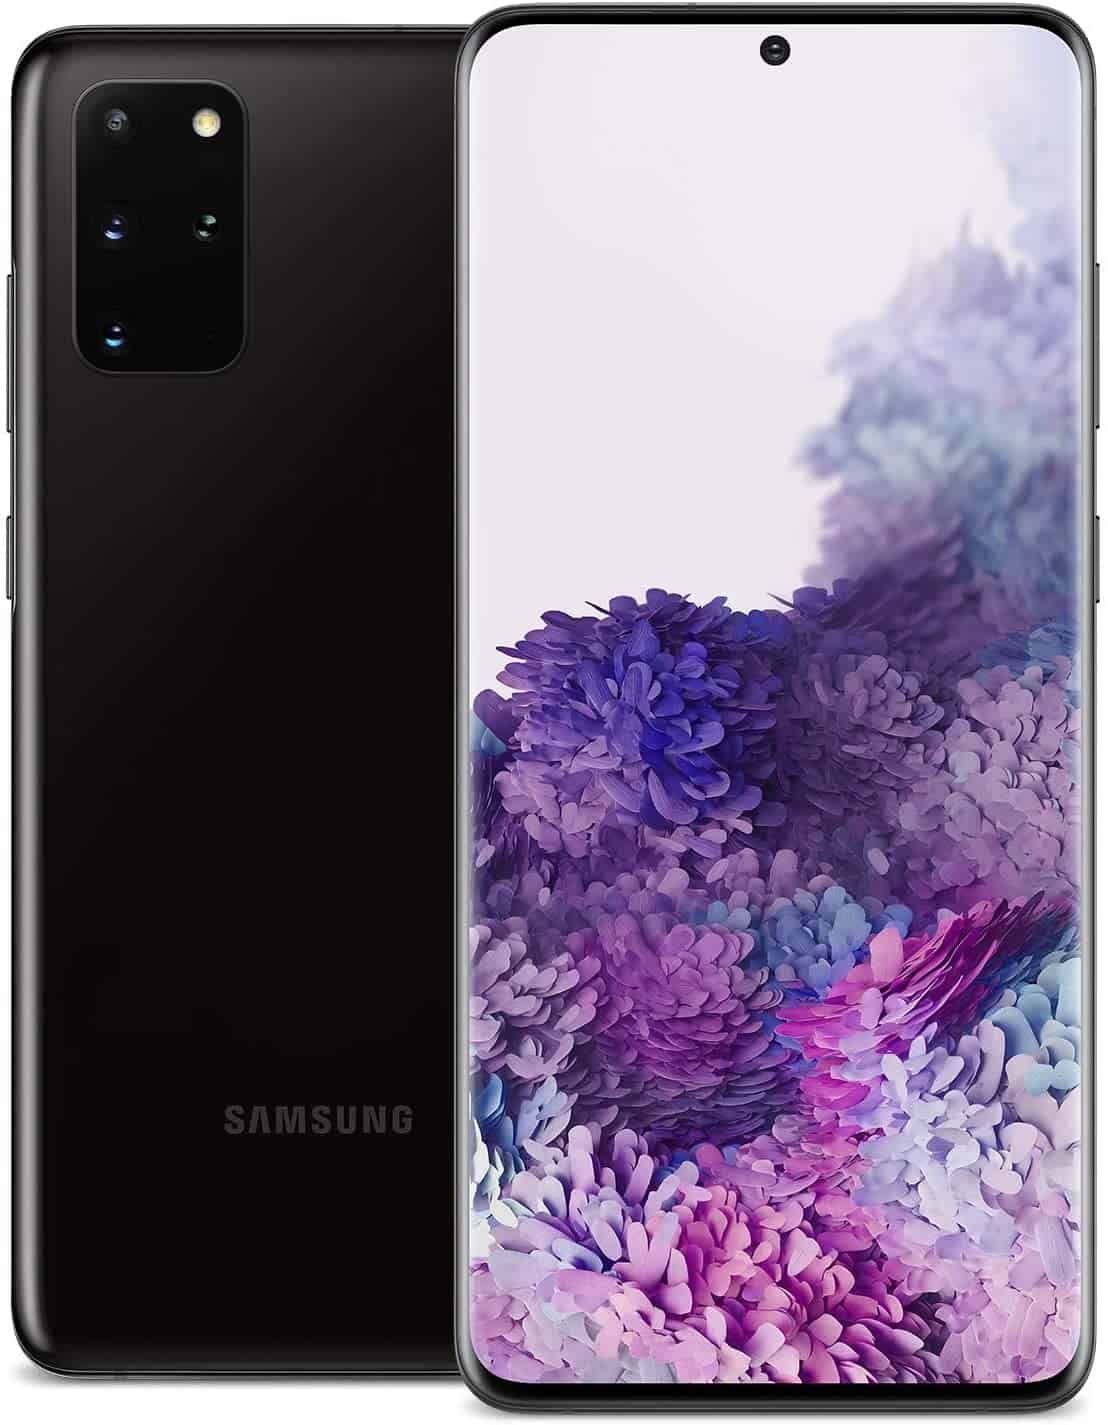 Samsung Galaxy S20+ 5G Factory Unlocked - Amazon